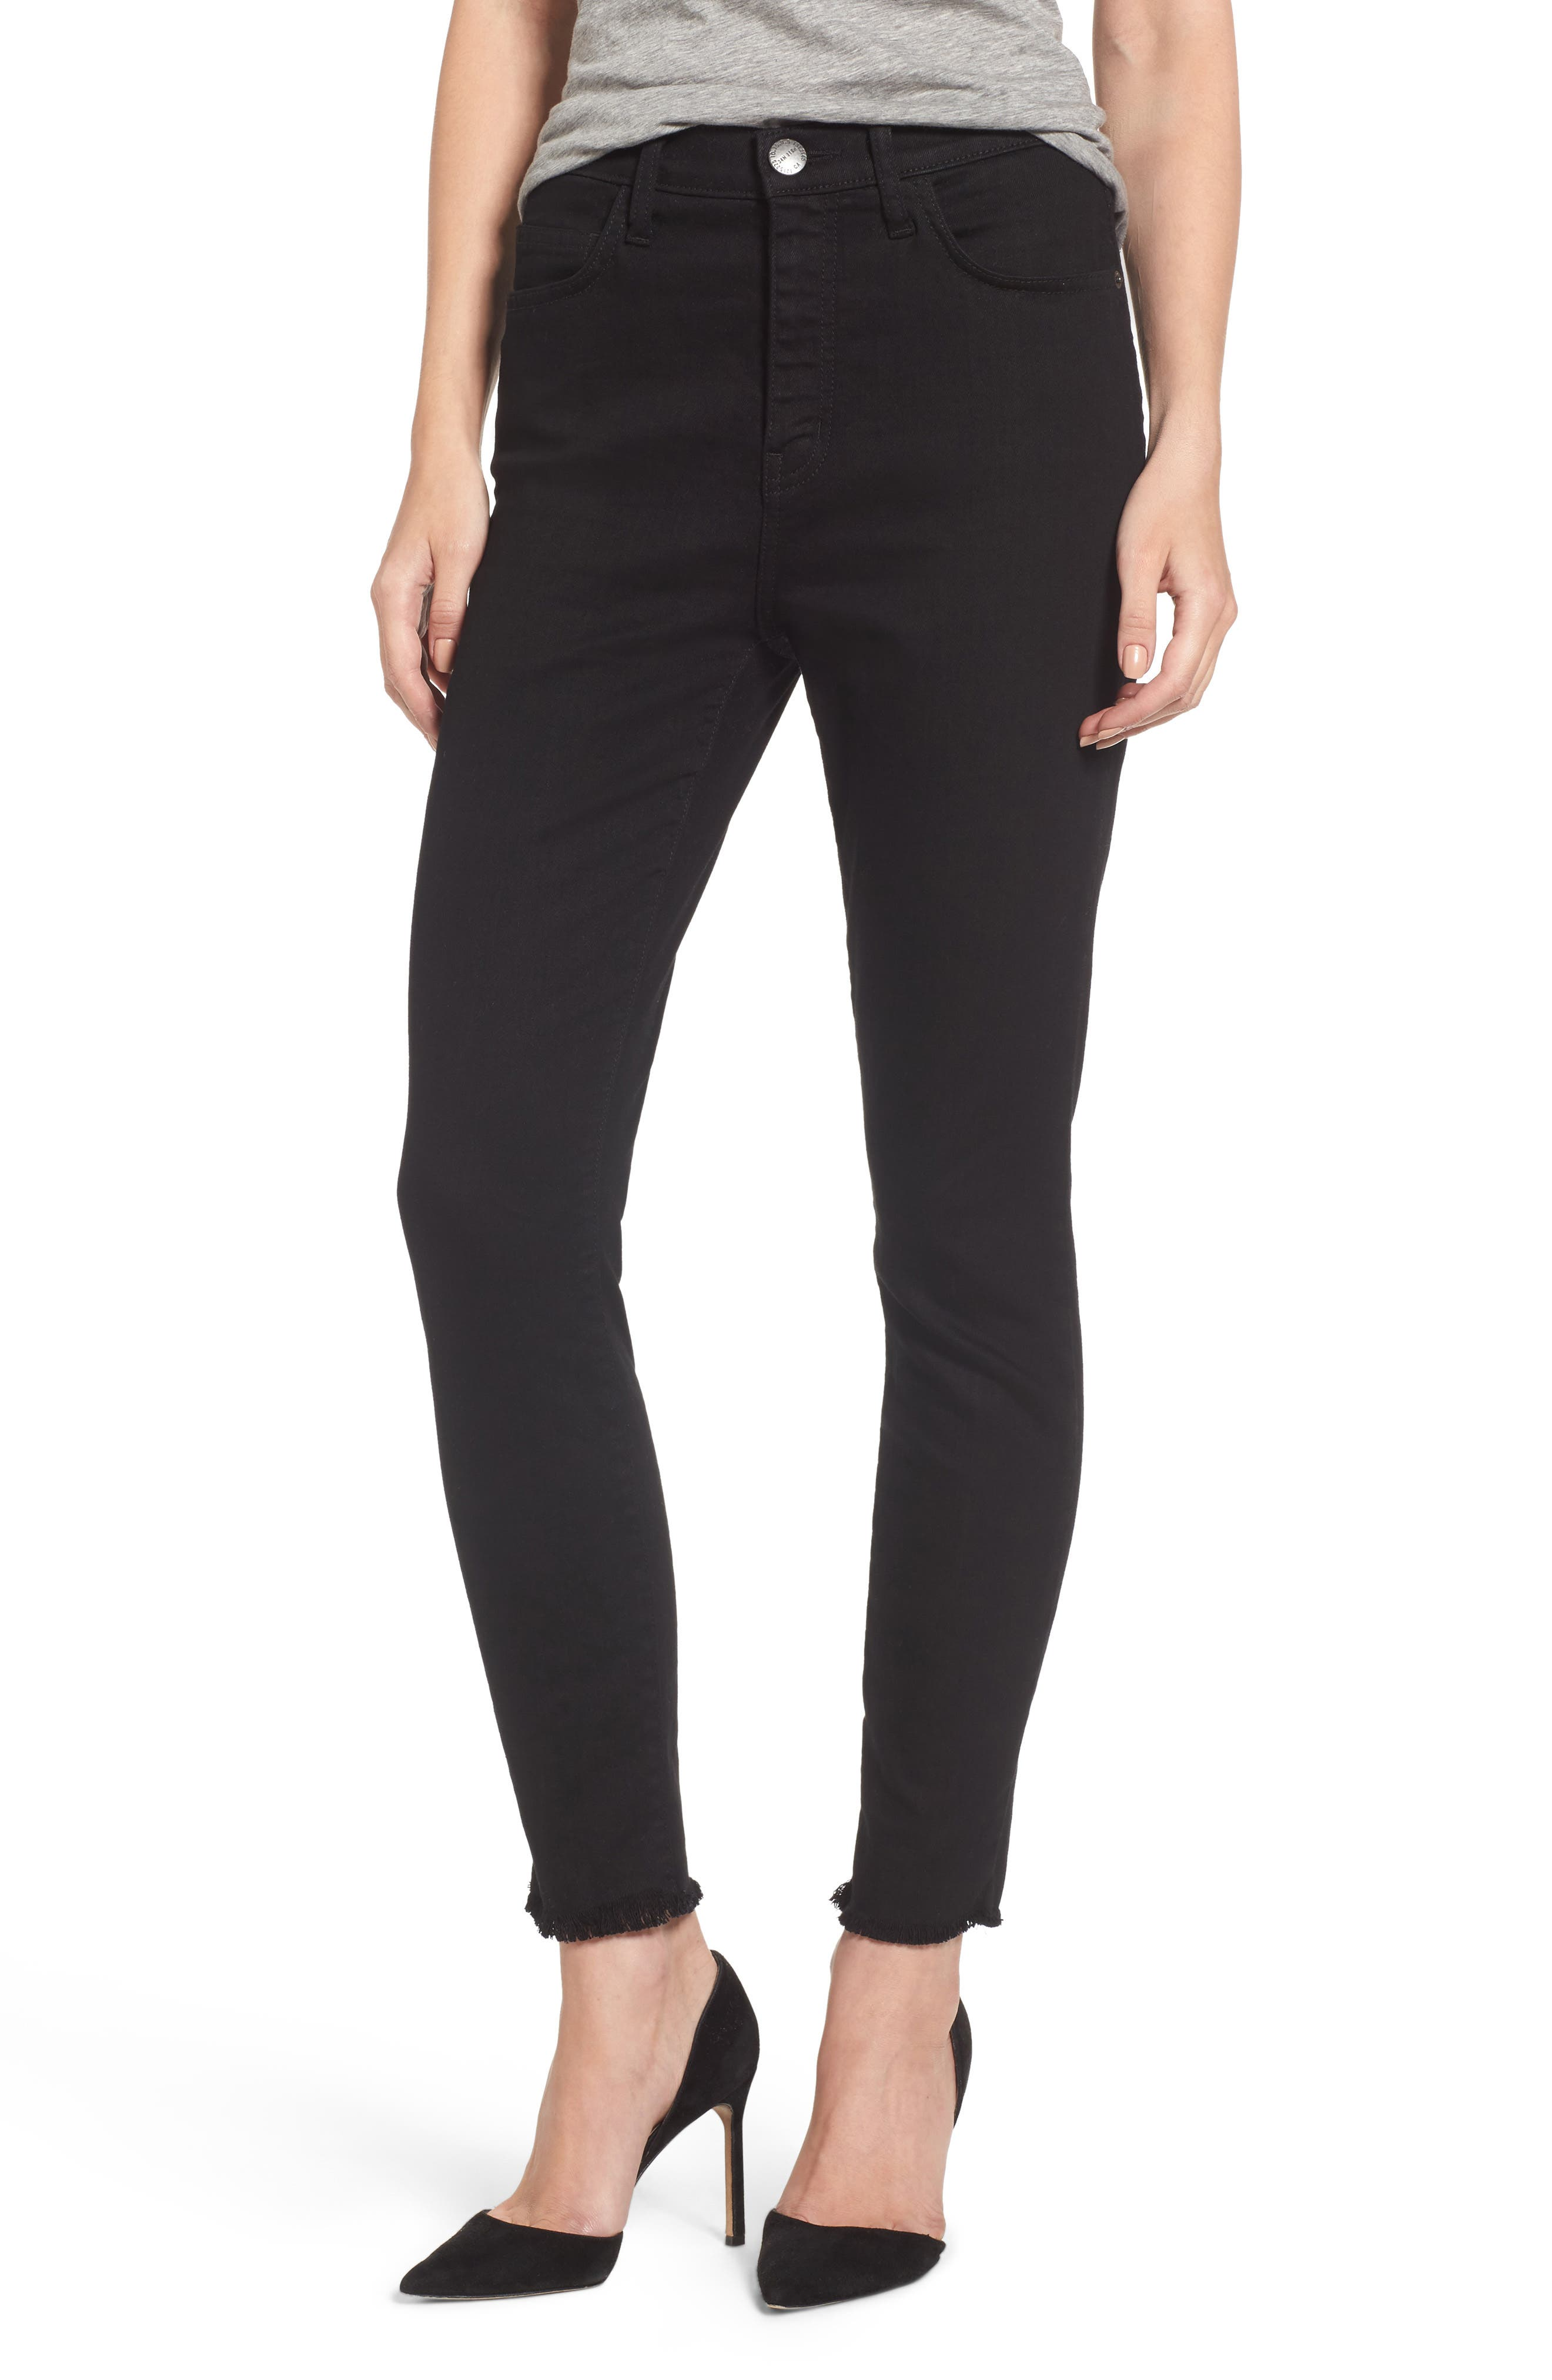 Main Image - Current/Elliott The Super High Waist Stiletto Ankle Skinny Jeans (Jet Black)